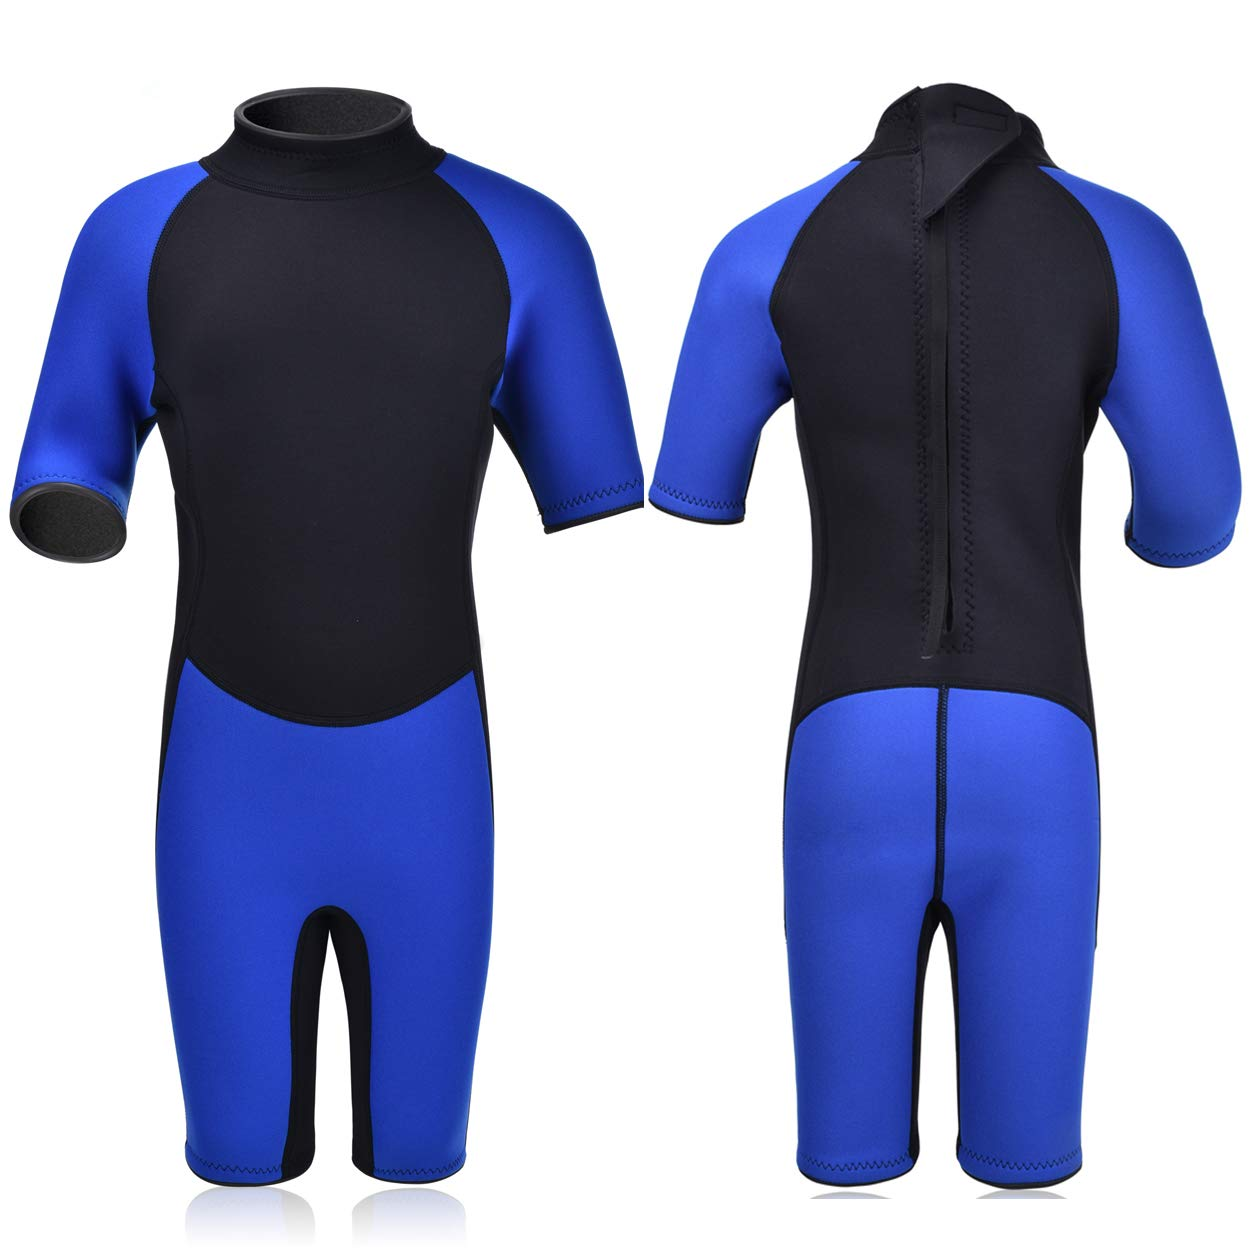 Realon Kids Wetsuit Shorty Full 3mm Premium Neoprene Lycra Swimsuit Toddler Baby Children and Girls Boys Youth Swim Surfing Snorkel Dive Snorkel XSPAN Back Zip Suit (Boy's Shorty Suit 3mm / Blue, XS)